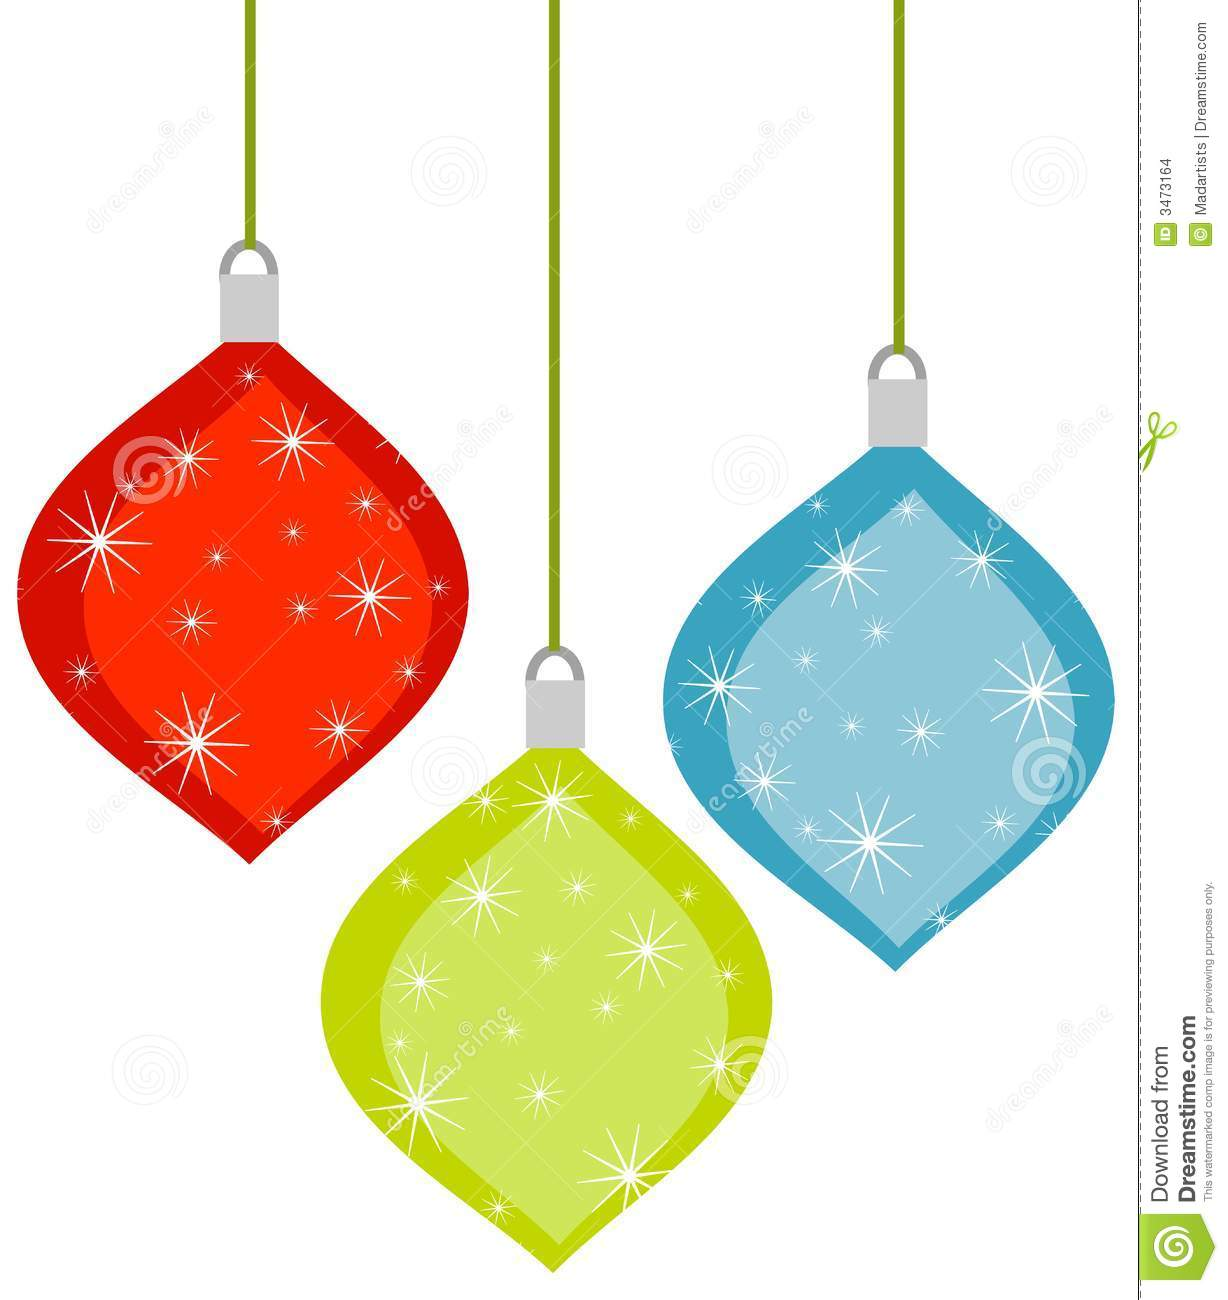 Clip Art Christmas Ornament Clip Art christmas ornament outline clipart kid use these free images for your websites art projects reports and